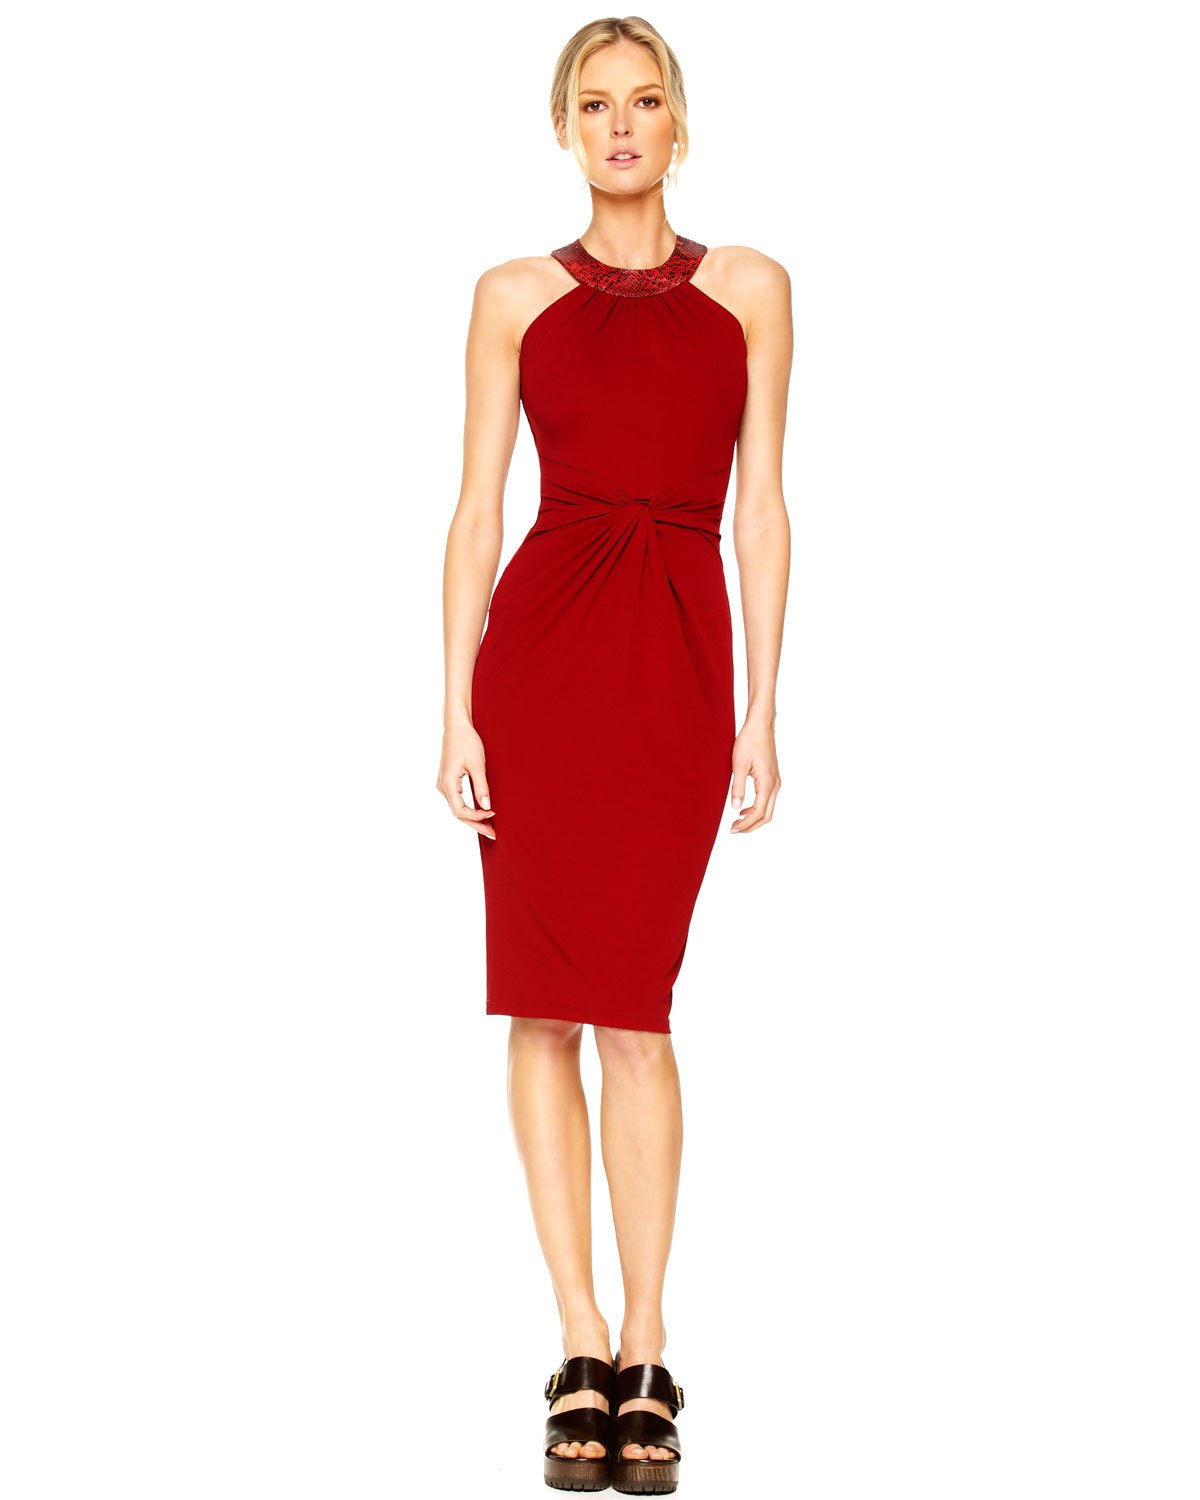 Michael kors Twist-front Halter Dress in Red (natural) | Lyst